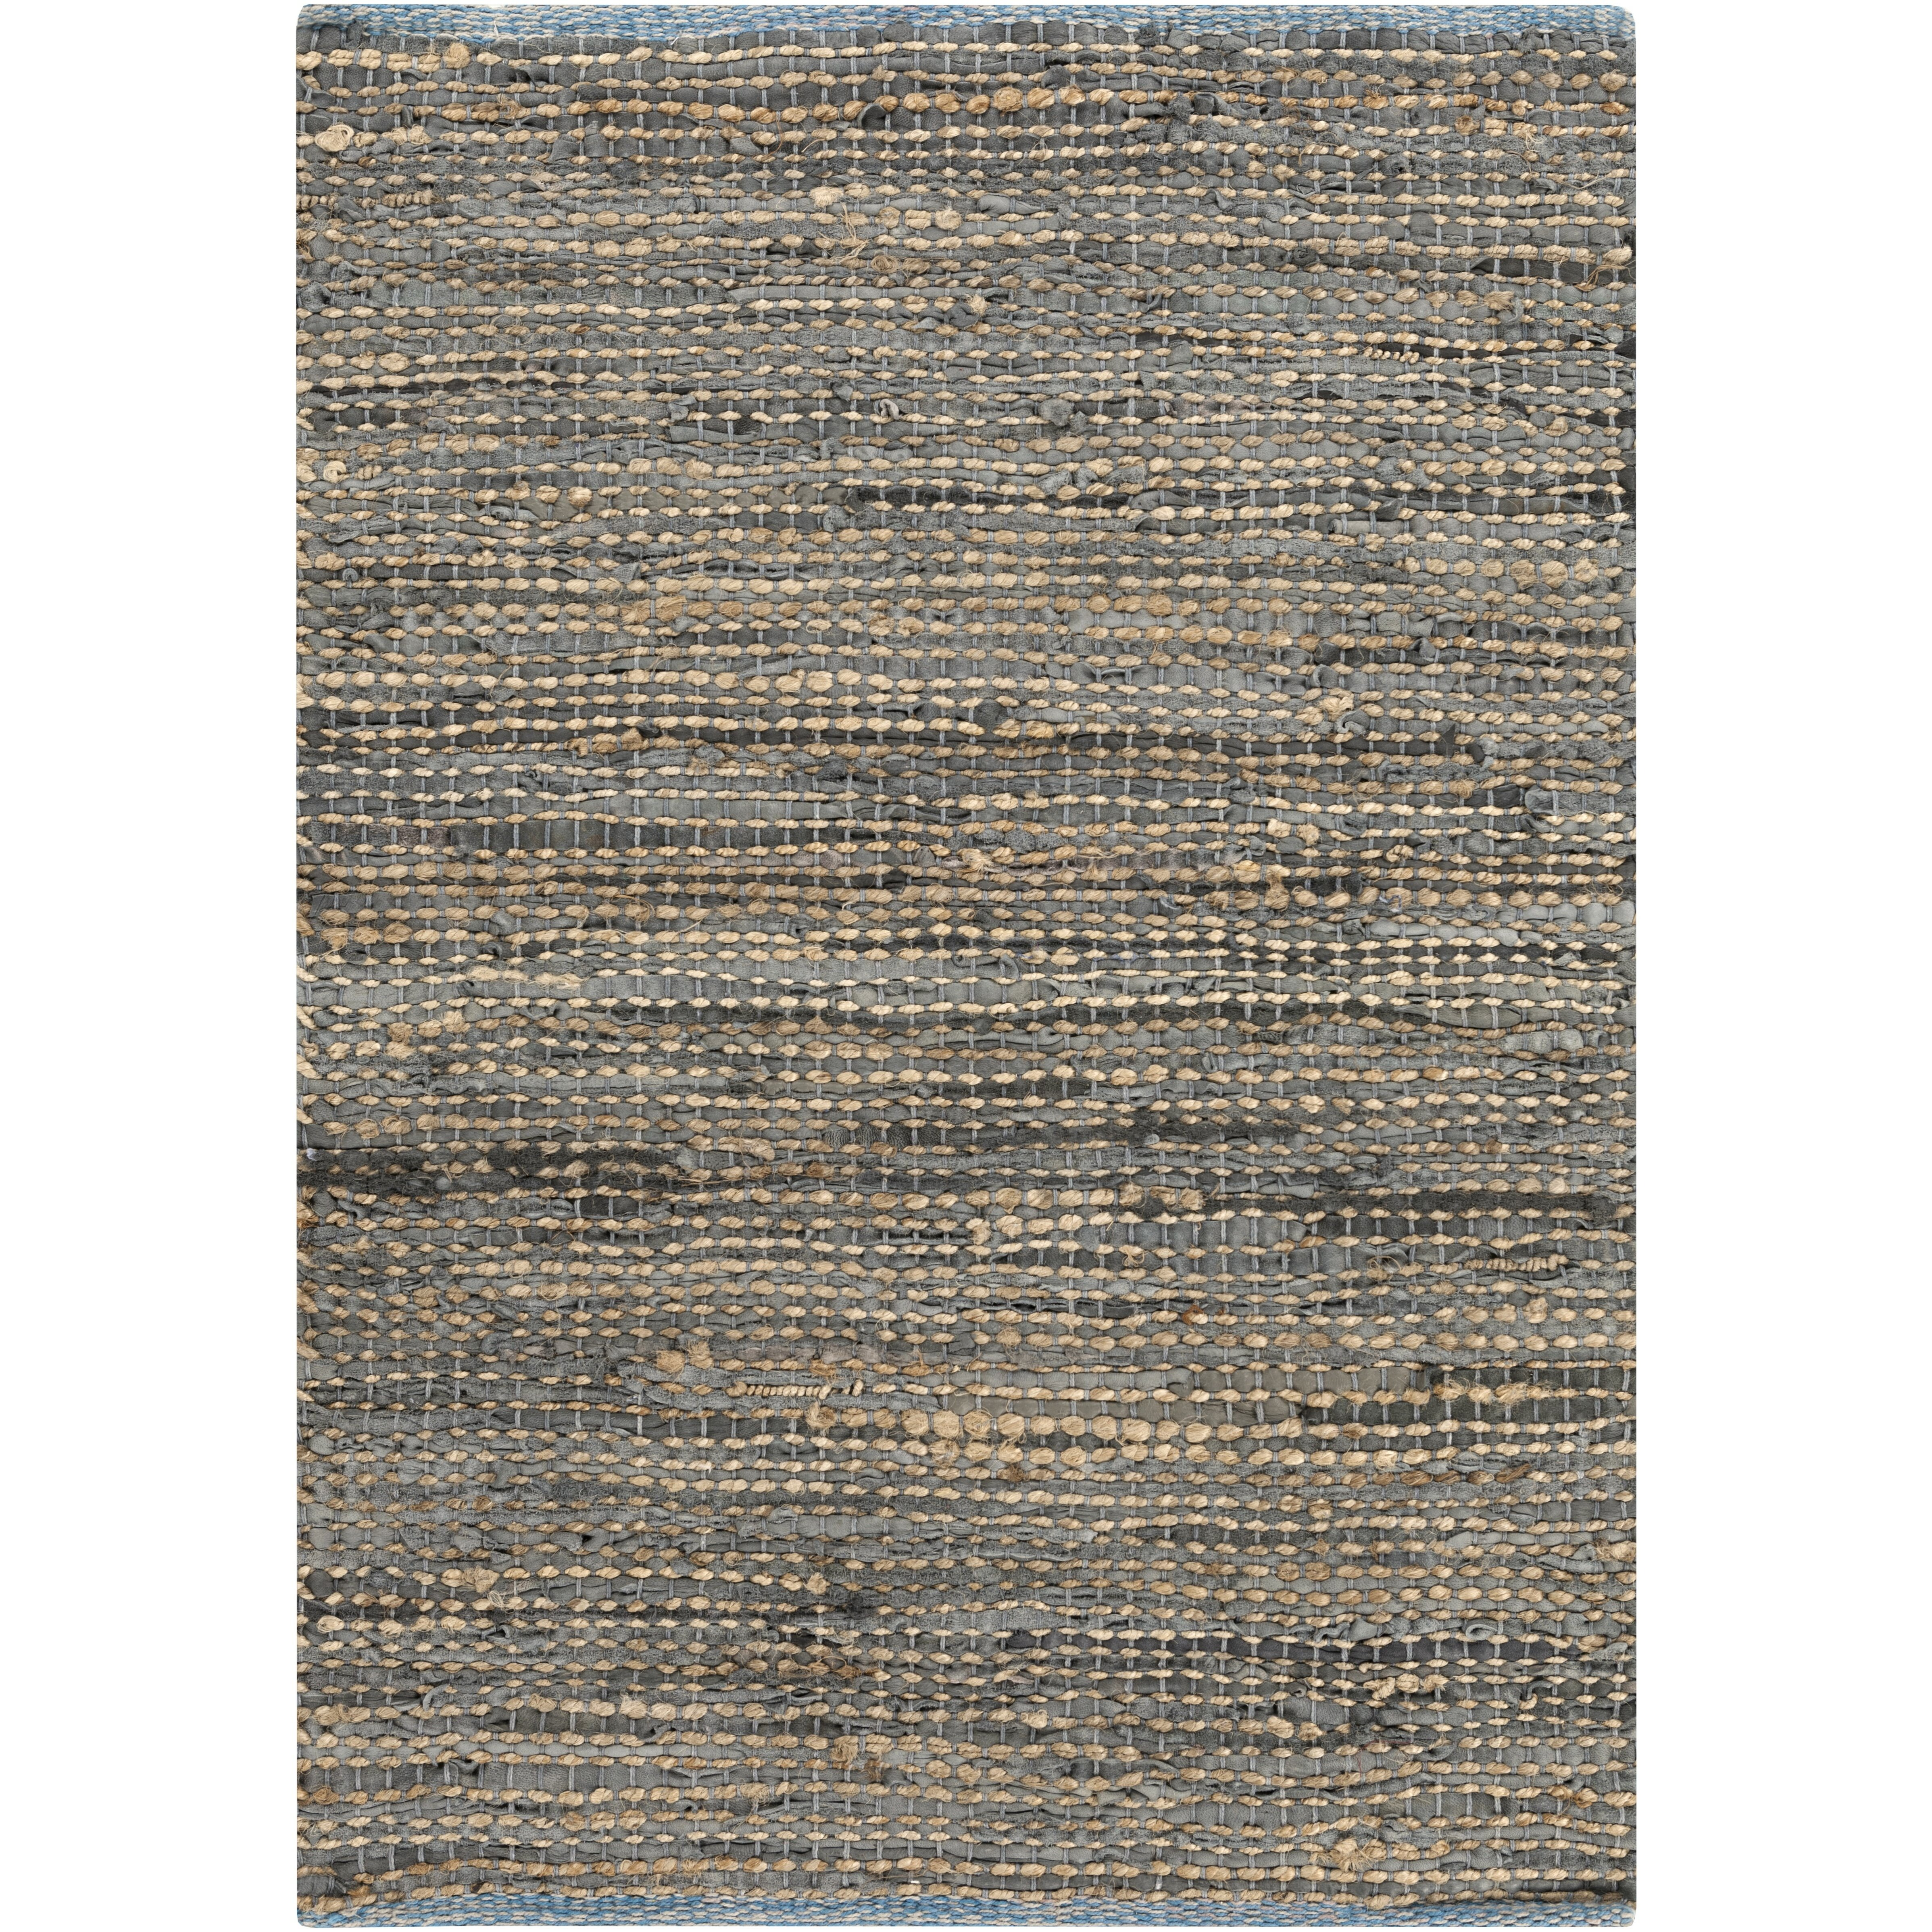 for design home spectacular rug rugs interior with in decoration cheap styles nyc attractive